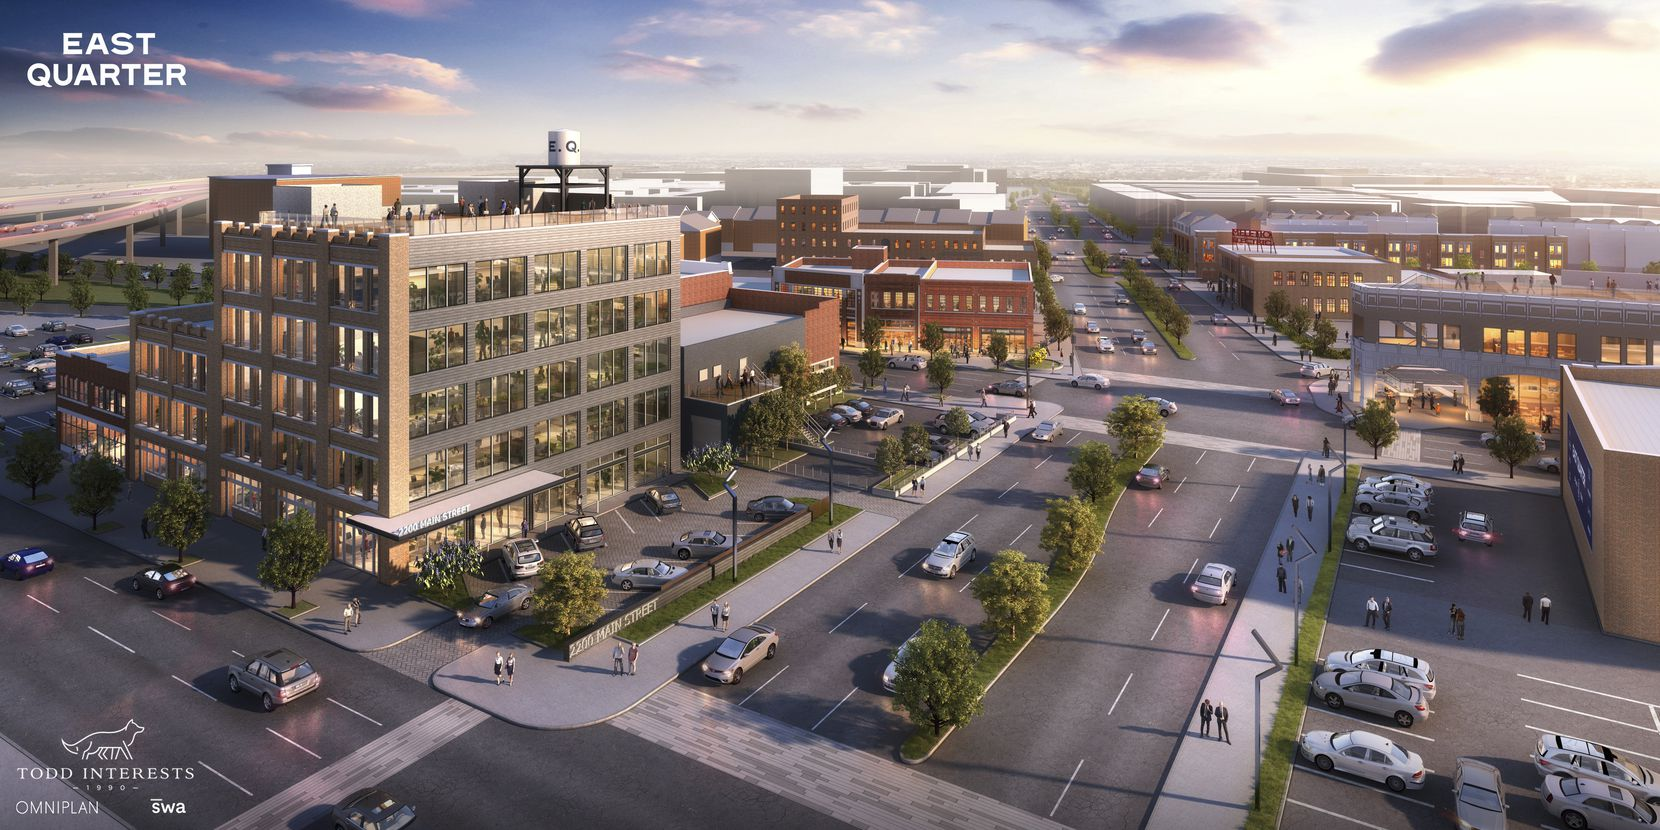 The East Quarter development includes almost two dozen historic buildings and lots on the east side of downtown Dallas that will be repurposed for office and retail space.